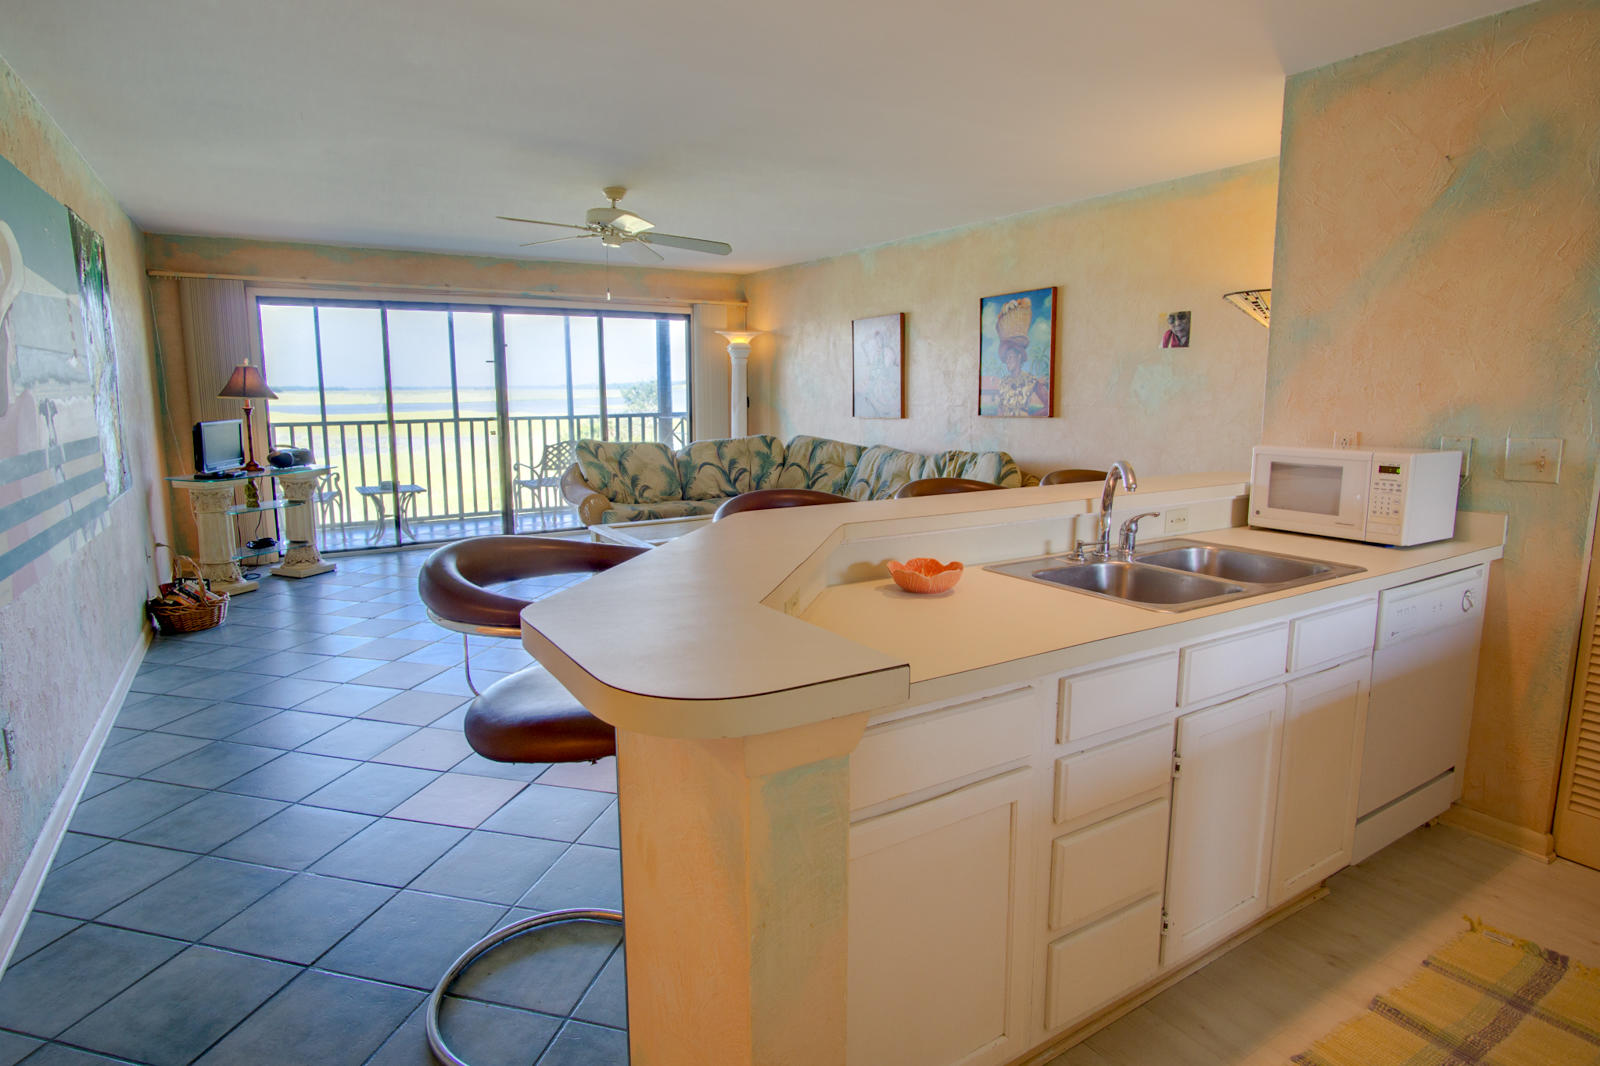 Mariners Cay Homes For Sale - 105 Mariners Cay, Folly Beach, SC - 12